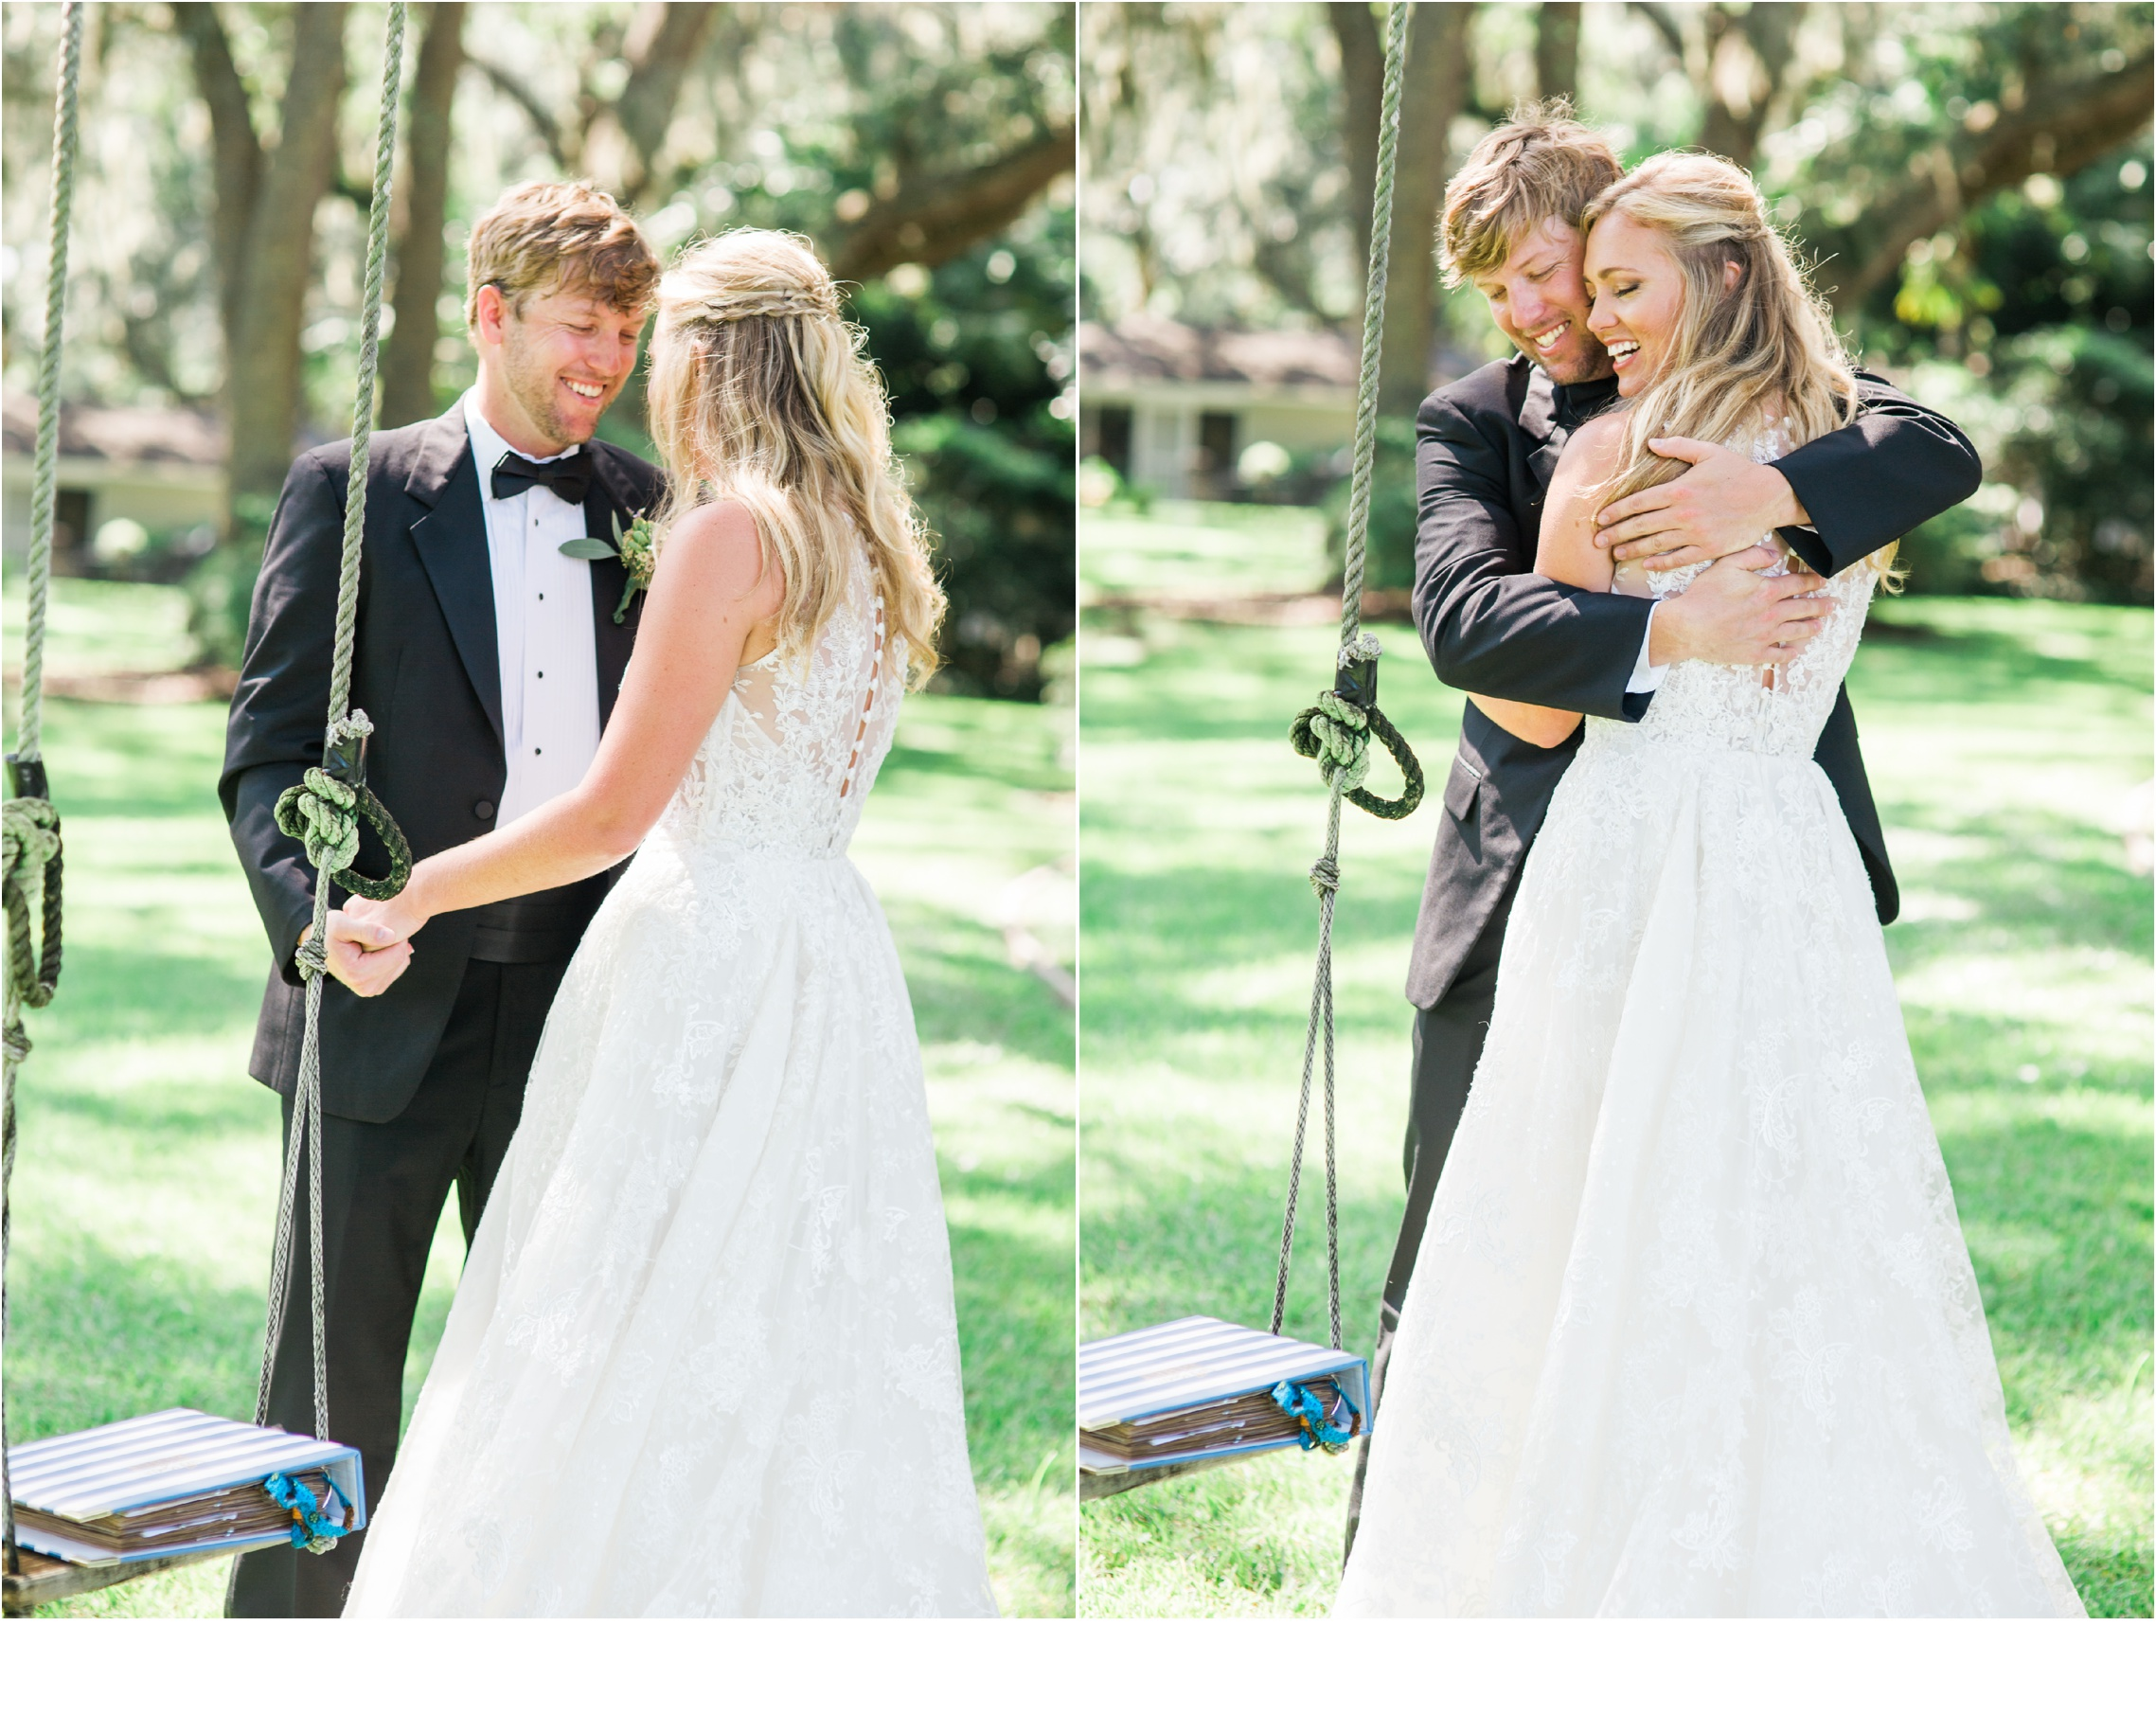 Rainey_Gregg_Photography_St._Simons_Island_Georgia_California_Wedding_Portrait_Photography_0041.jpg